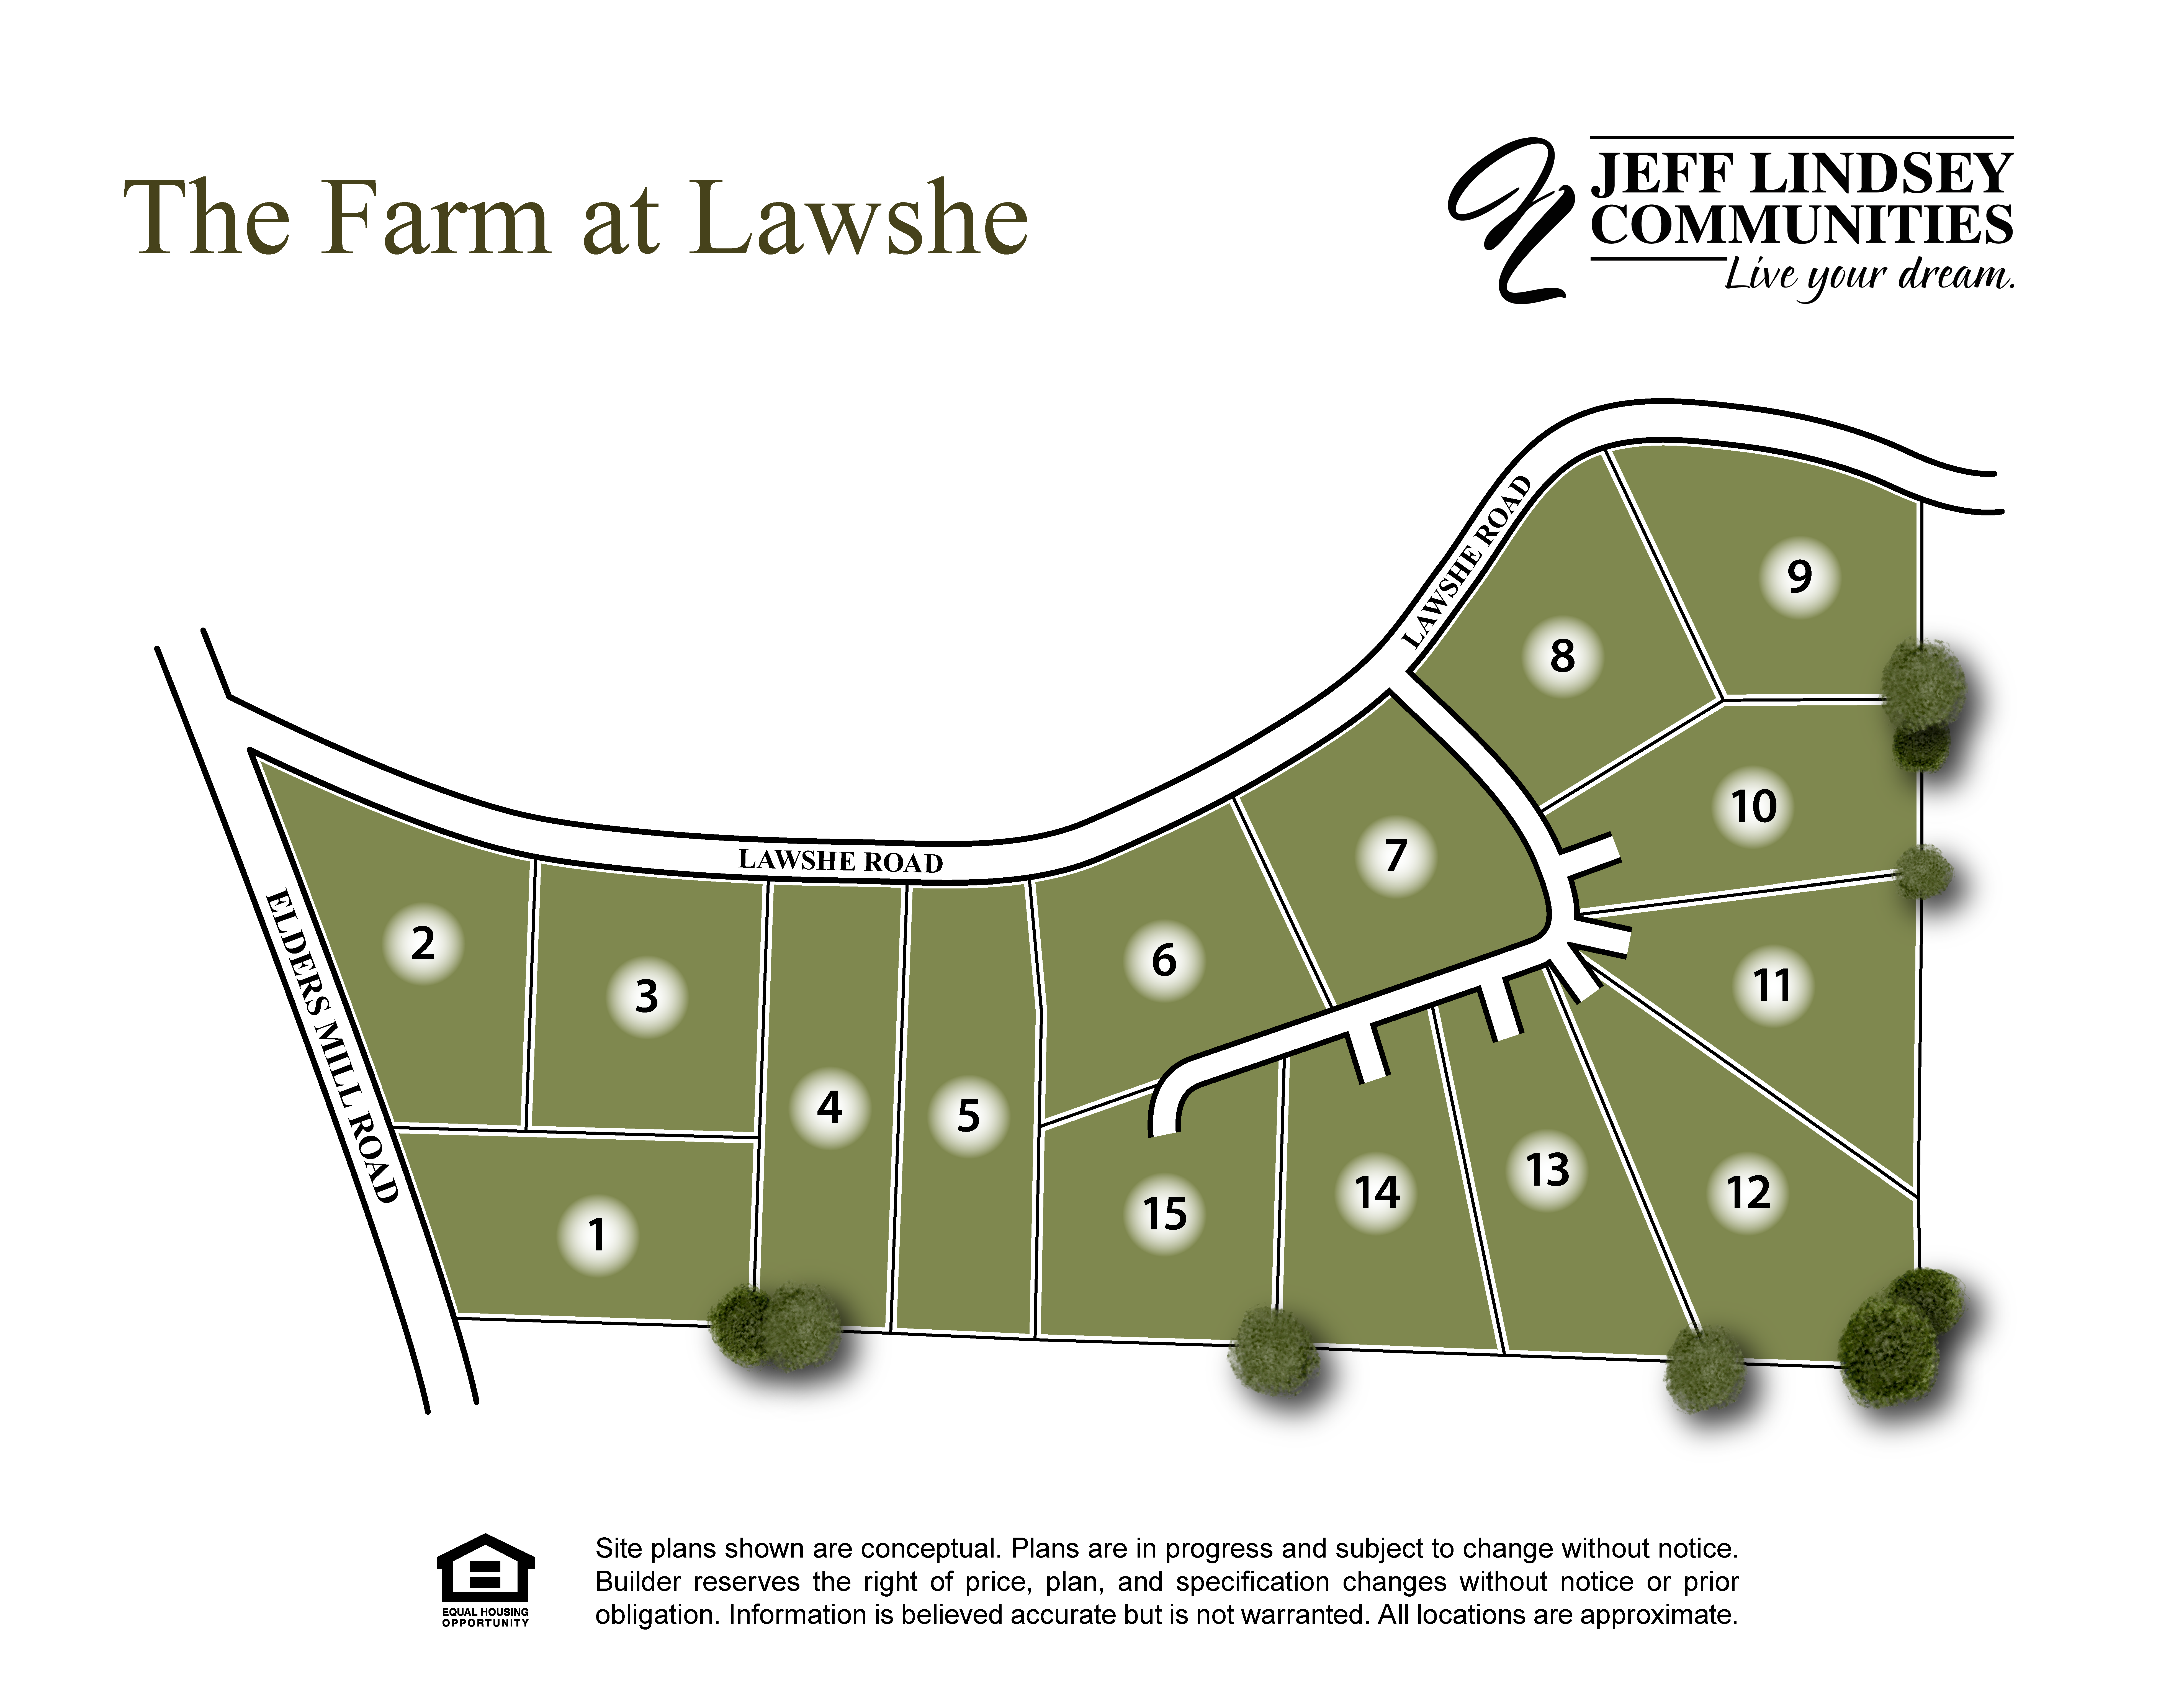 The Farm at Lawshe Site Map